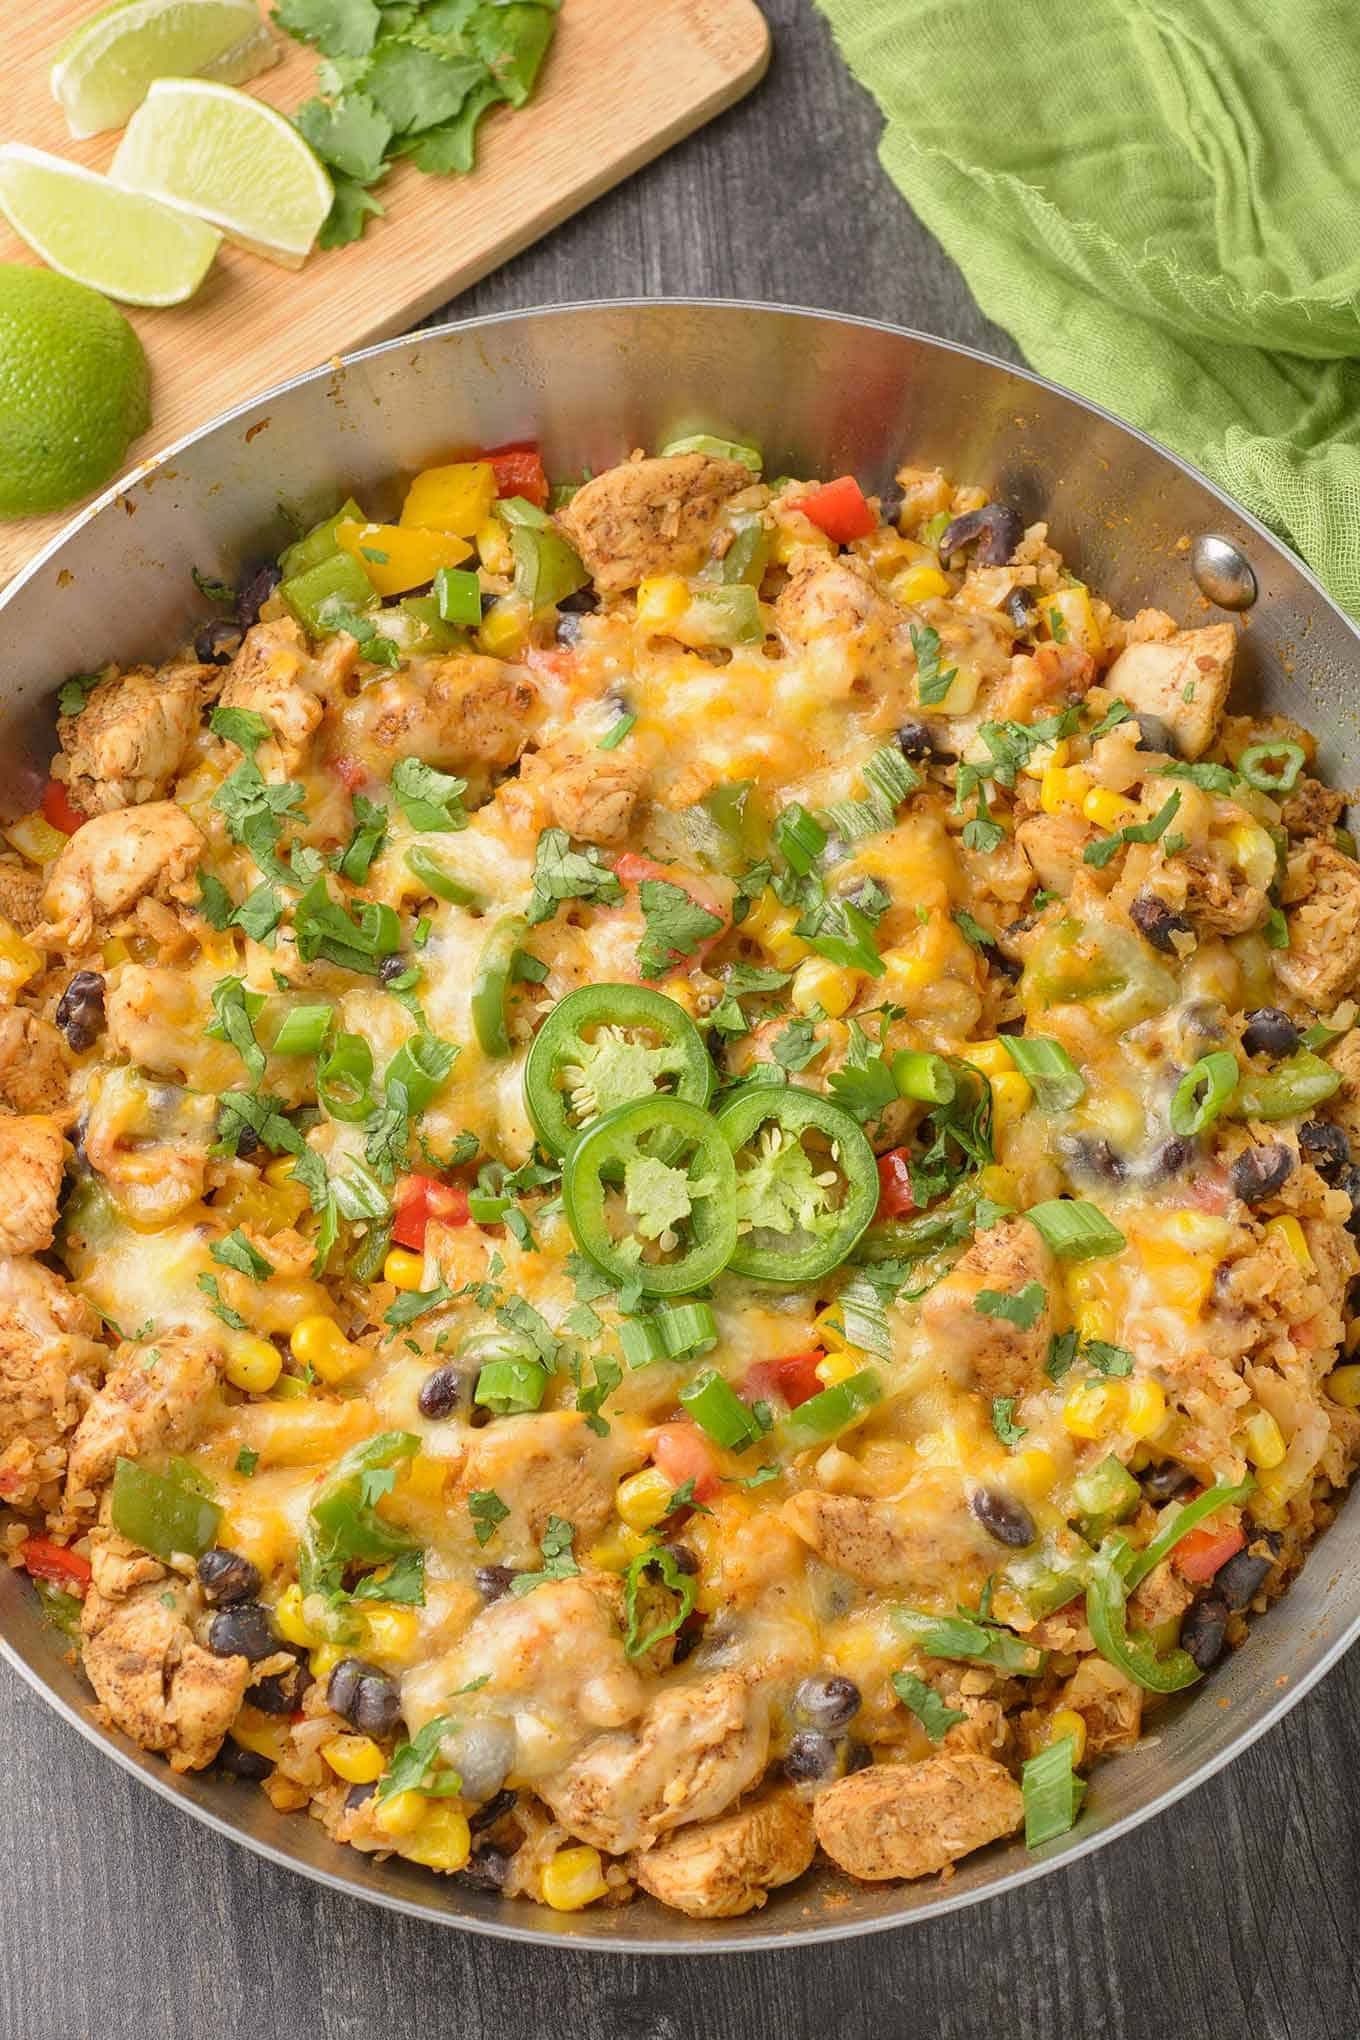 A frying pan filled with chicken, riced cauliflower, black beans, corn, melted cheese, green onions and cilantro.